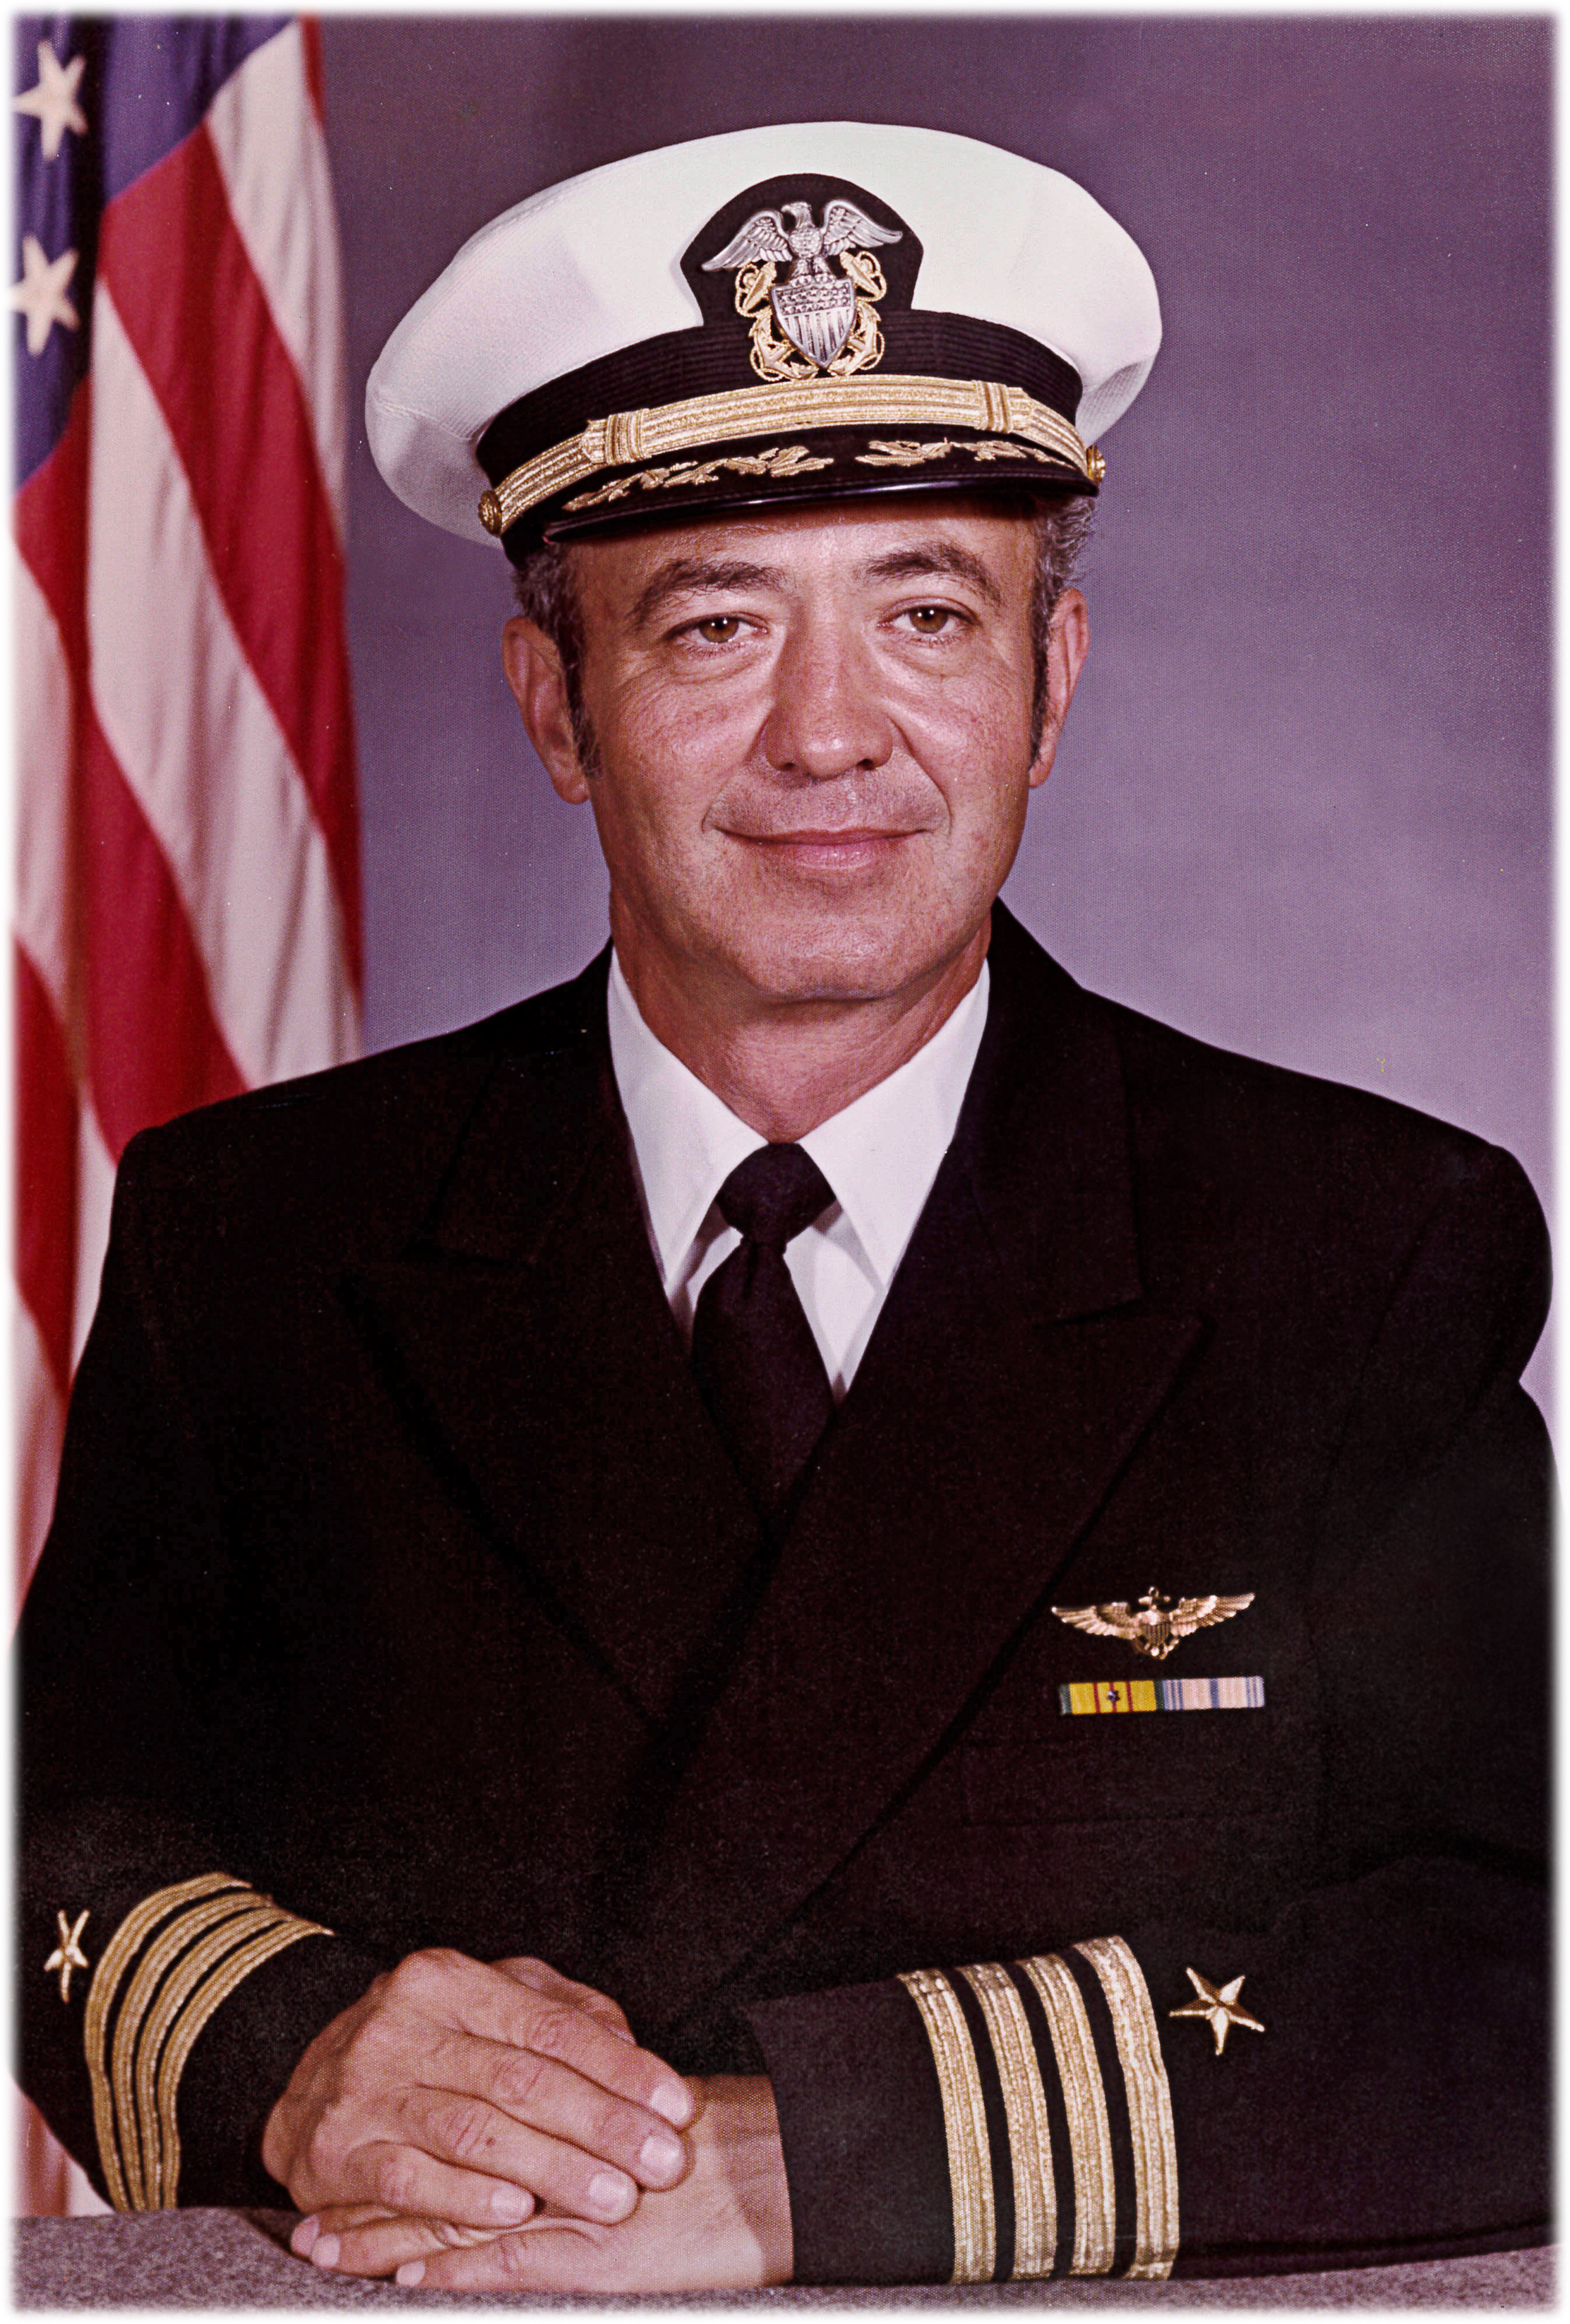 Lawrence P. Pollack